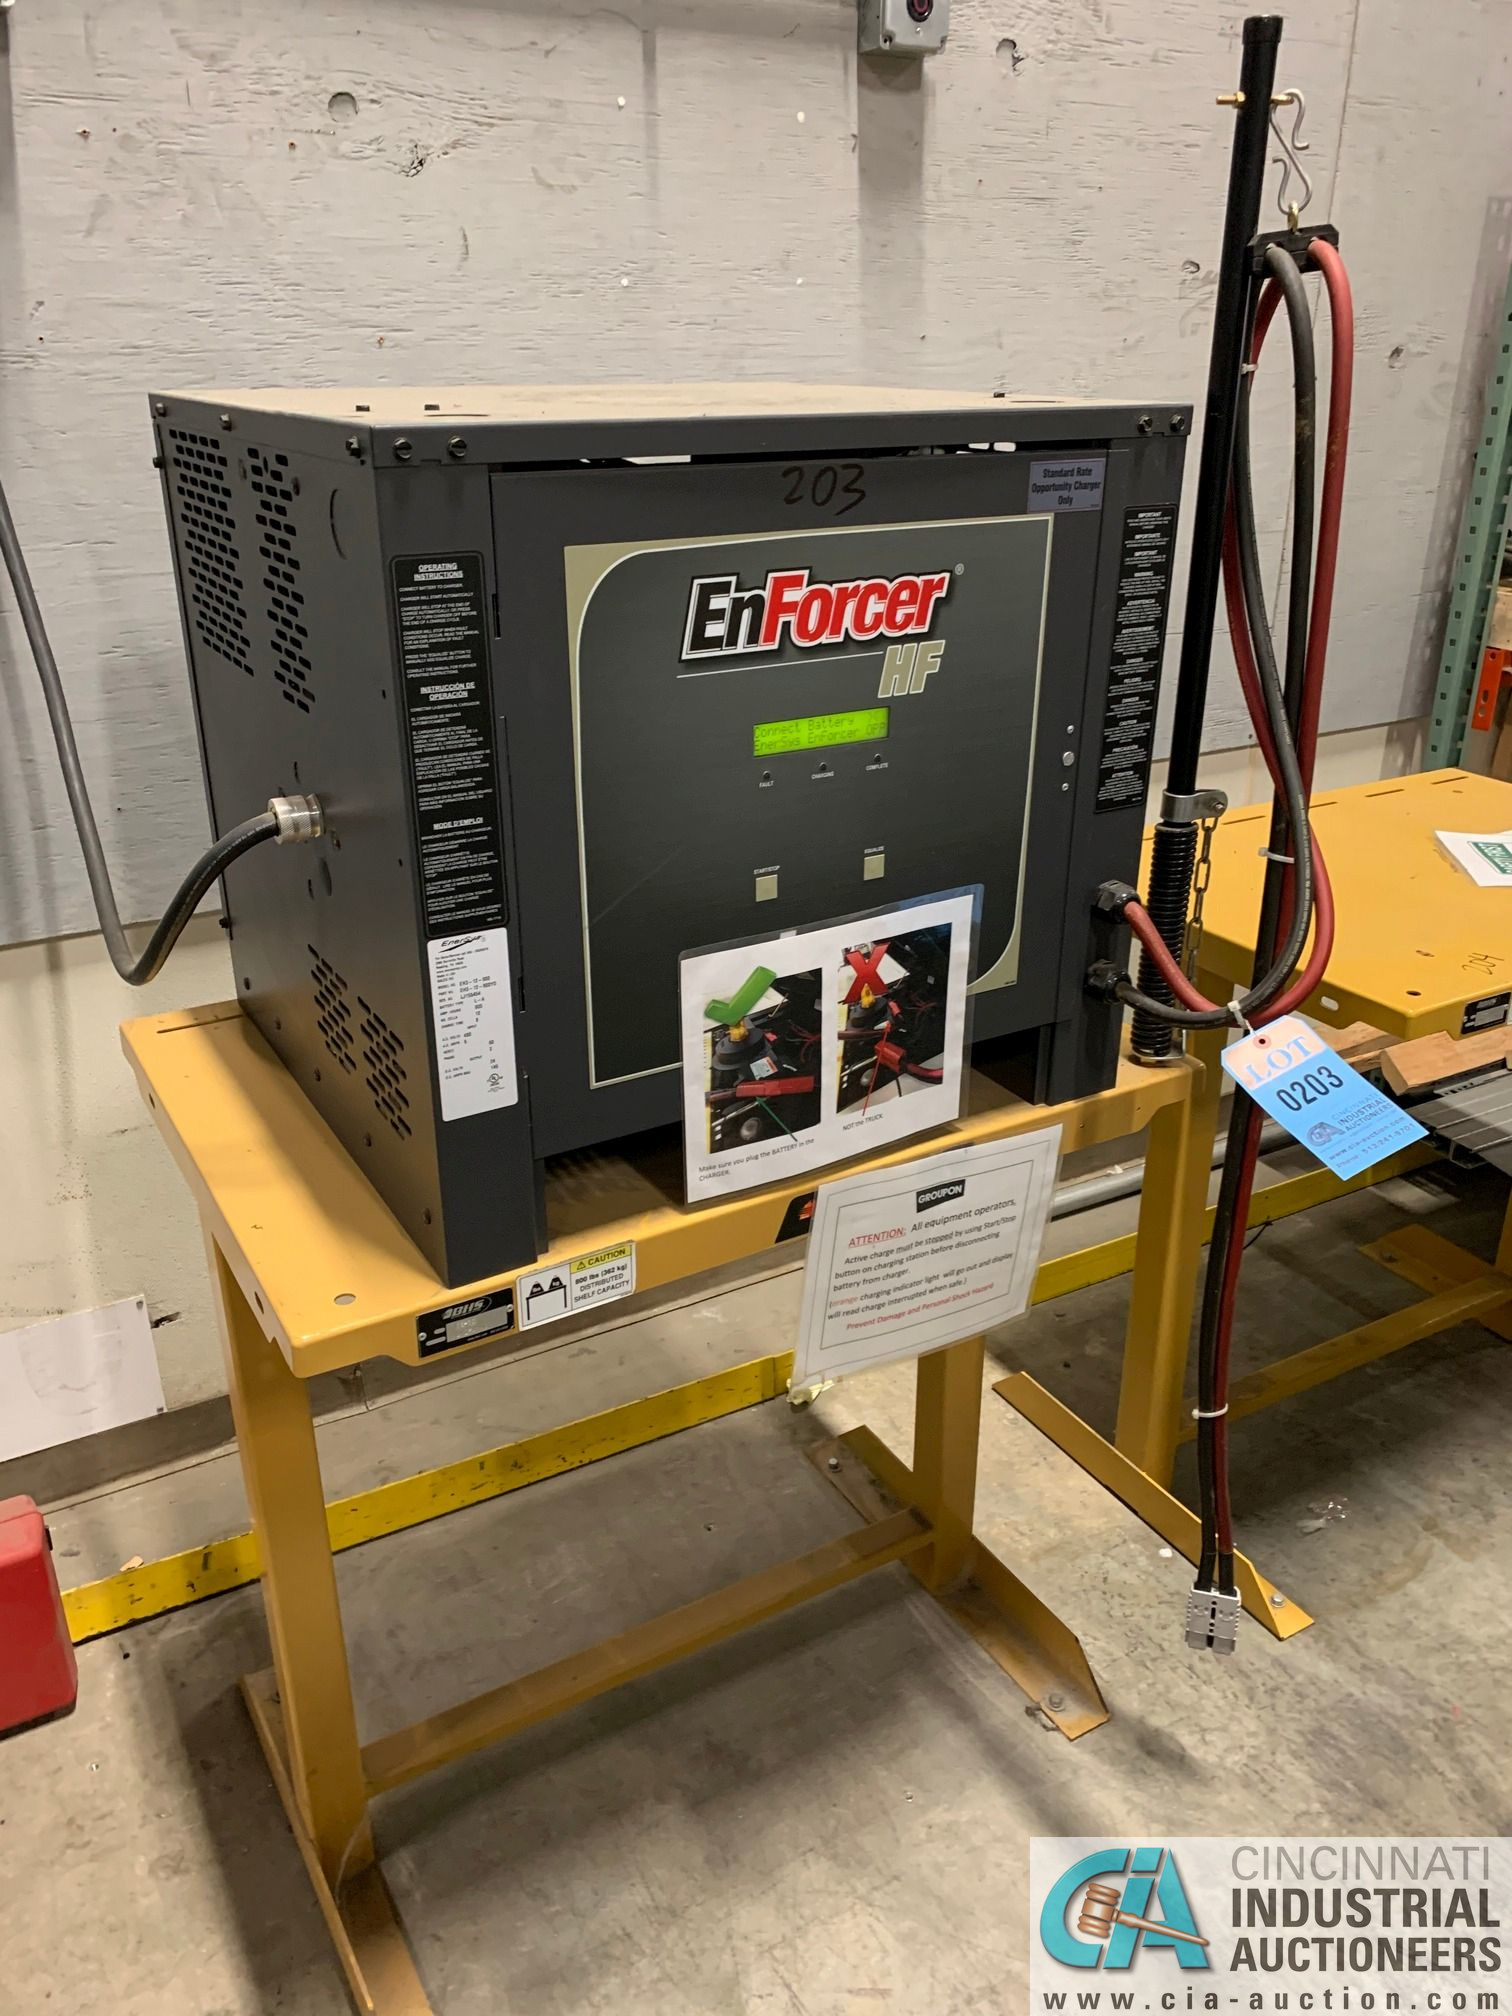 ENERSYS MODEL EH3-12-9000 ENFORCER HF BATTERY CHARGER WITH STAND **LOCATED IN AISLE BEHIND CHARGE - Image 2 of 3